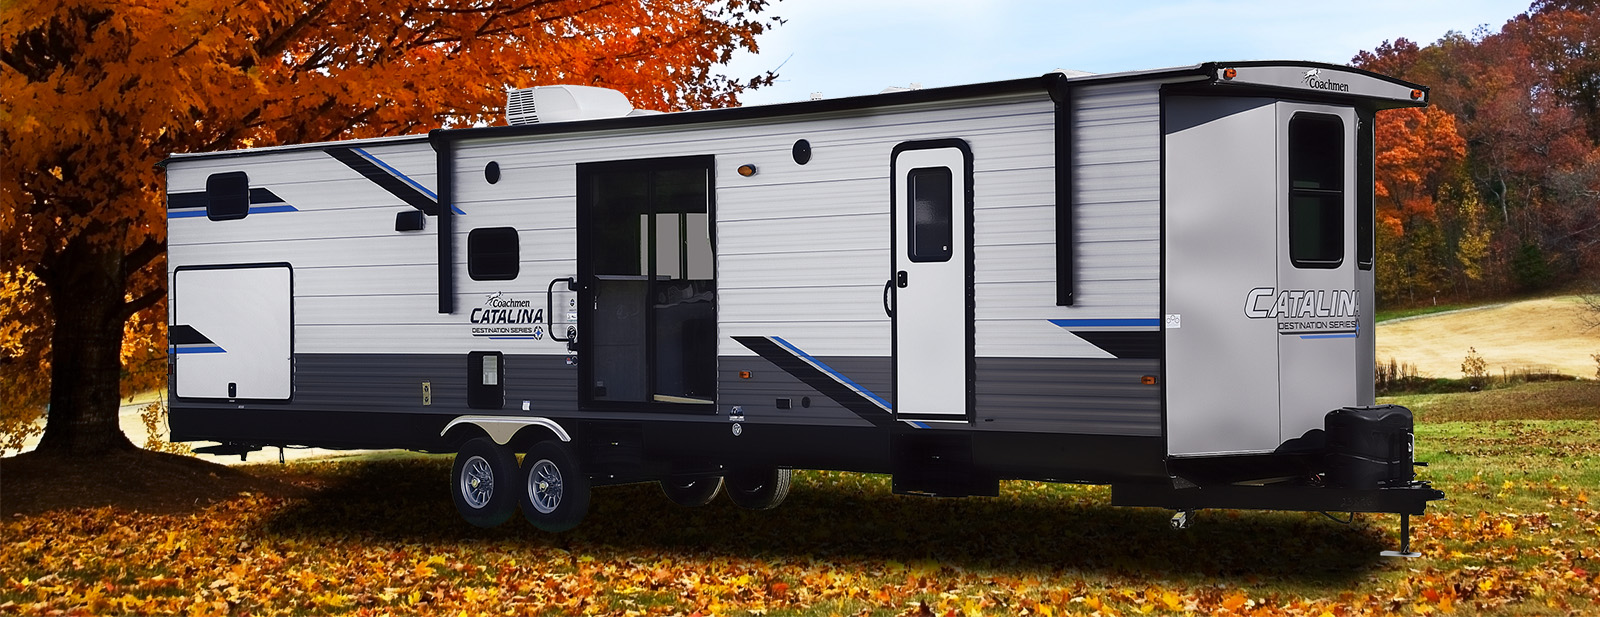 Catalina Destination Series Travel Trailers By Coachmen Rv